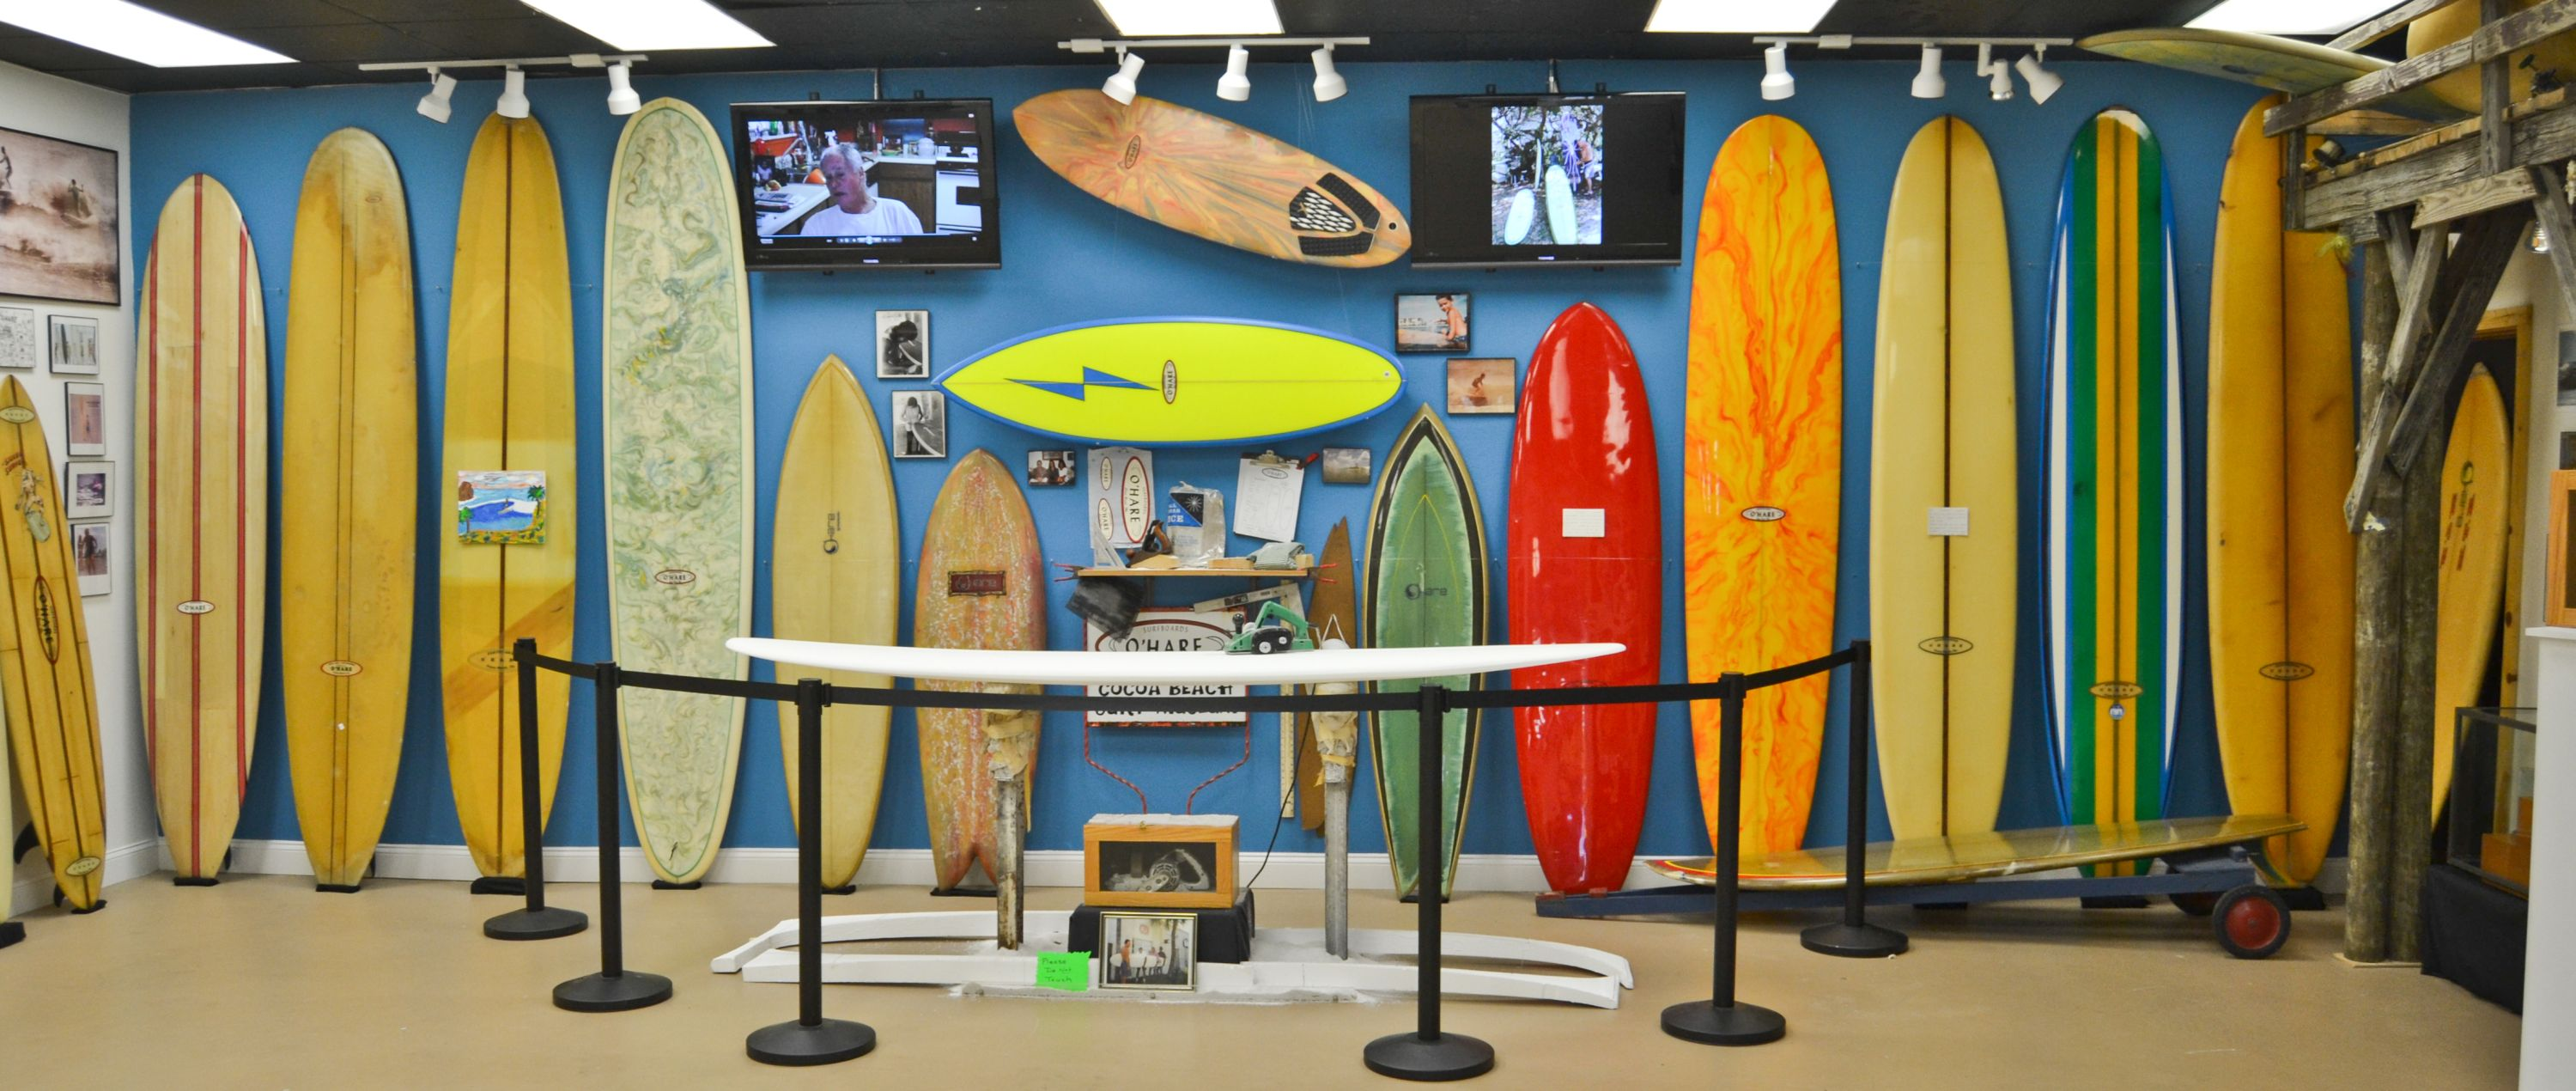 Pat O Hare Exhibit At The Cocoa Beach Surf Museum